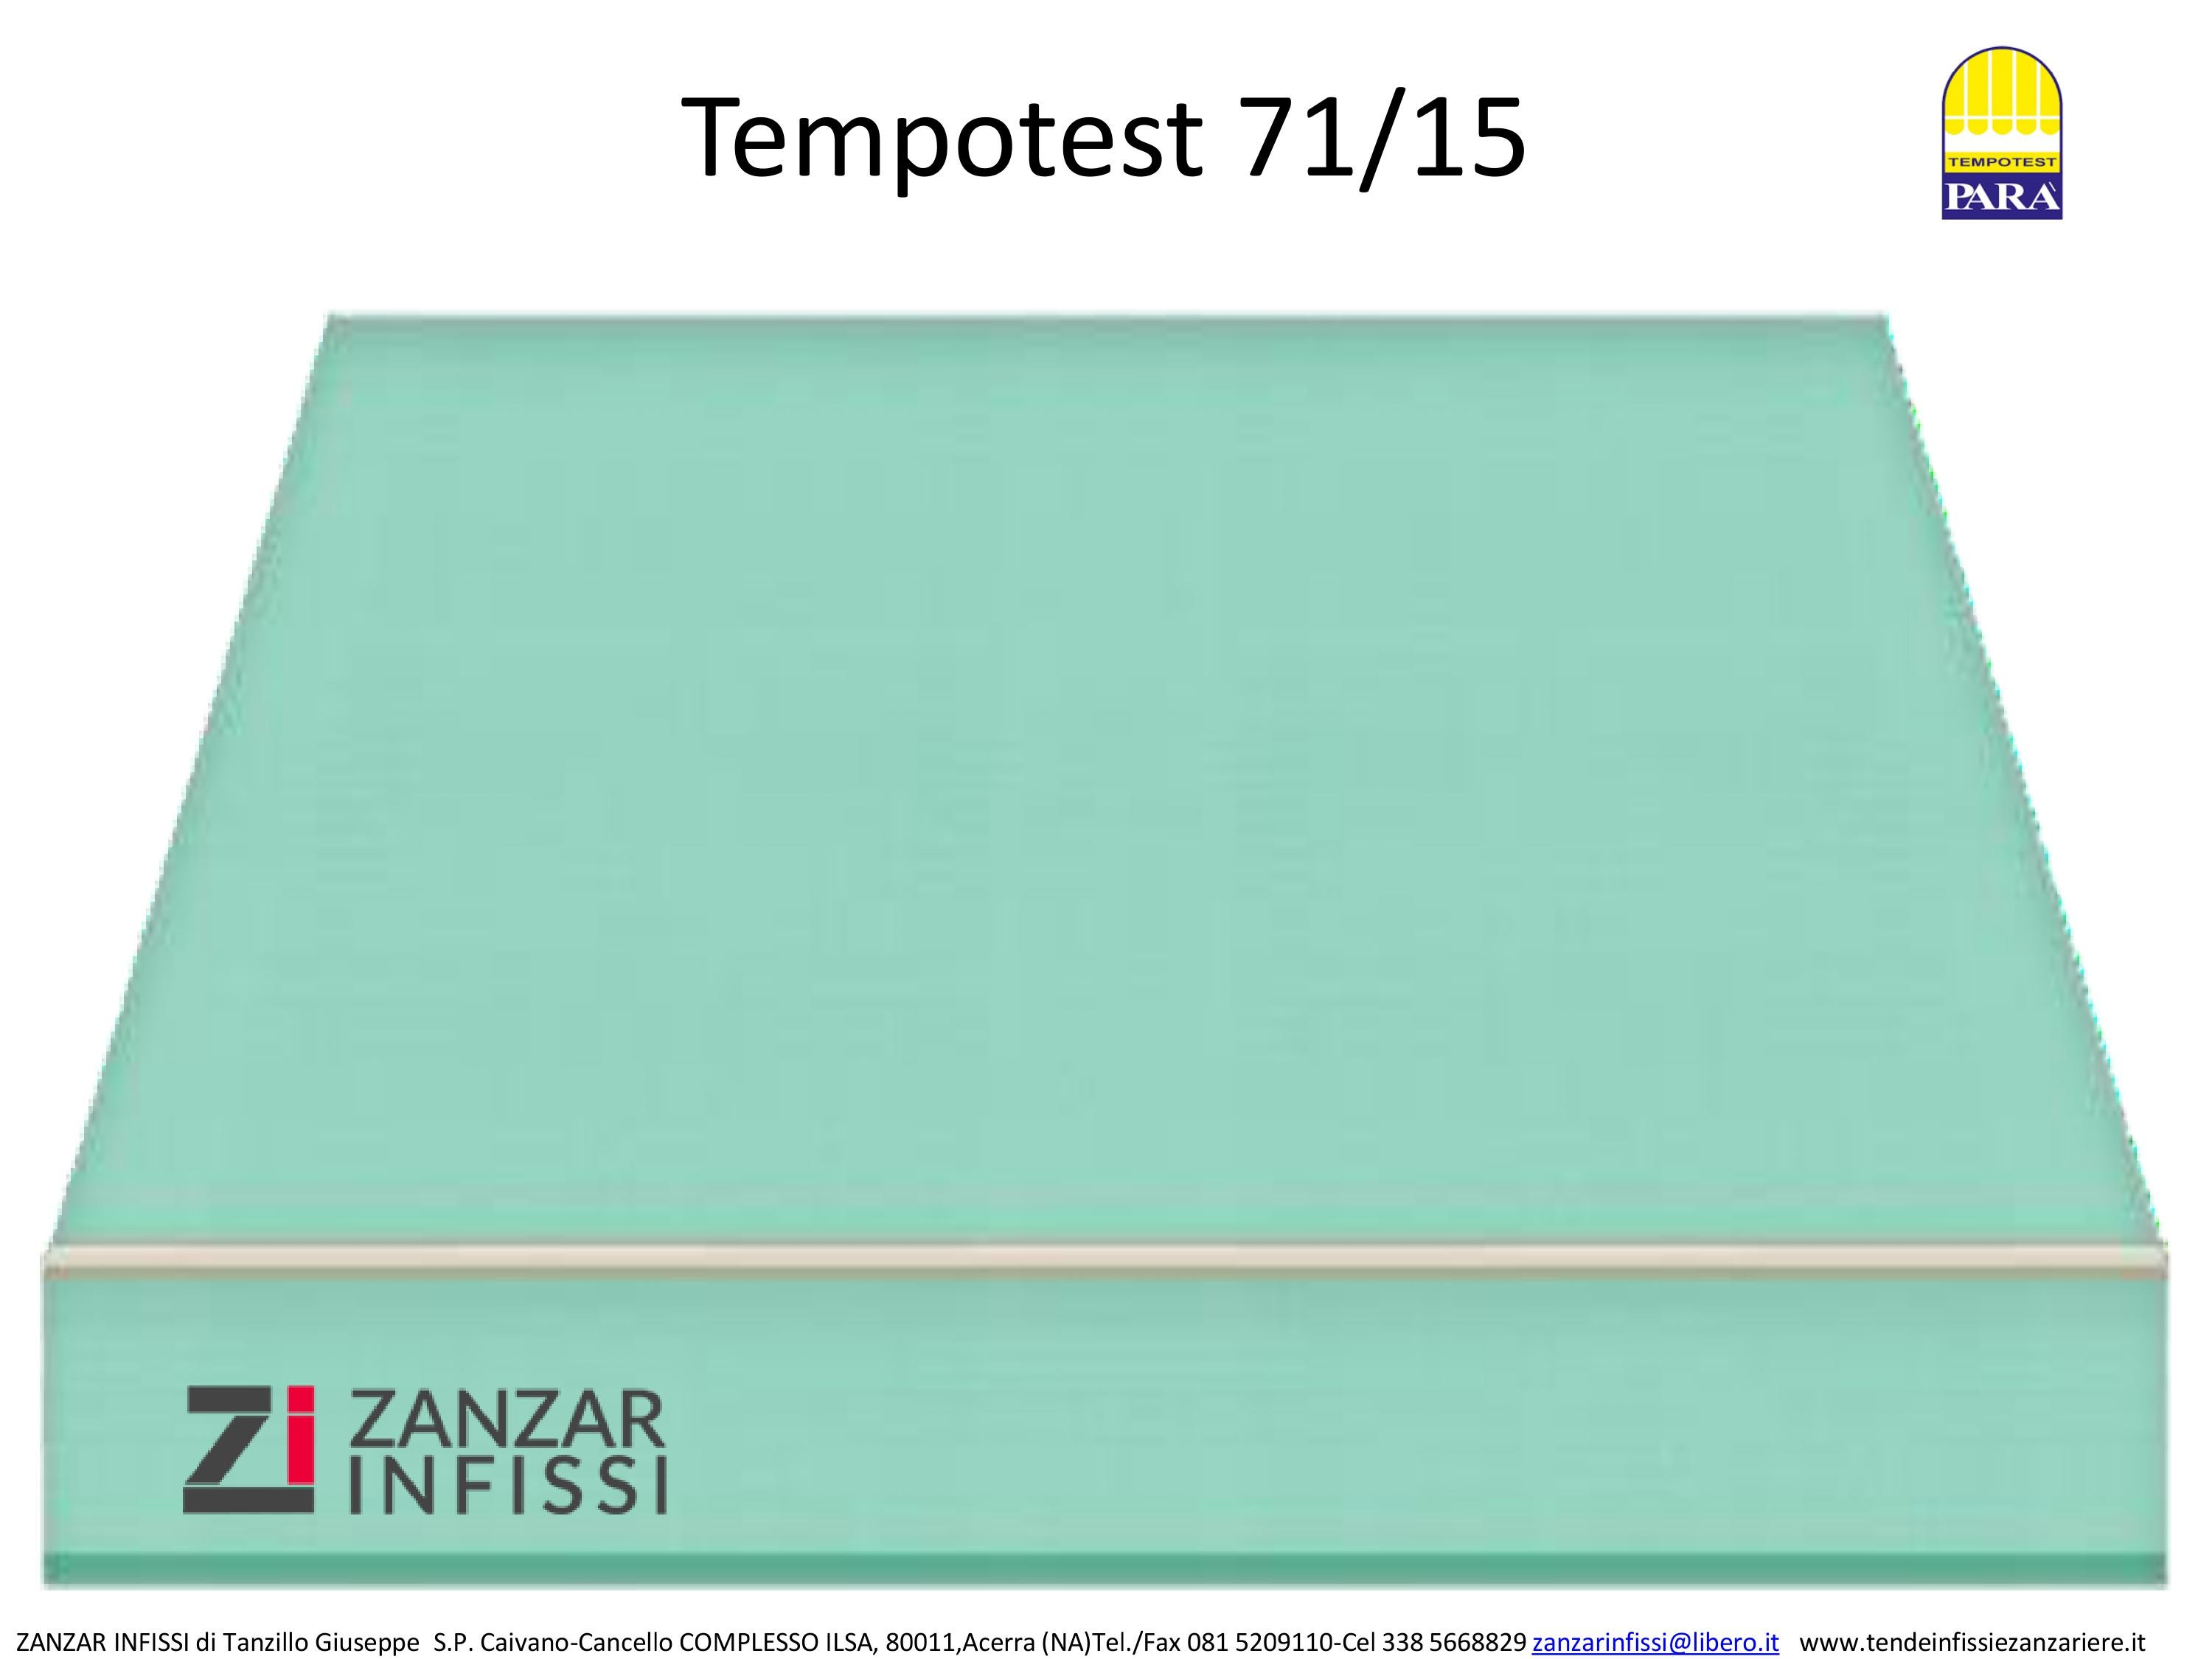 Tempotest 71/15